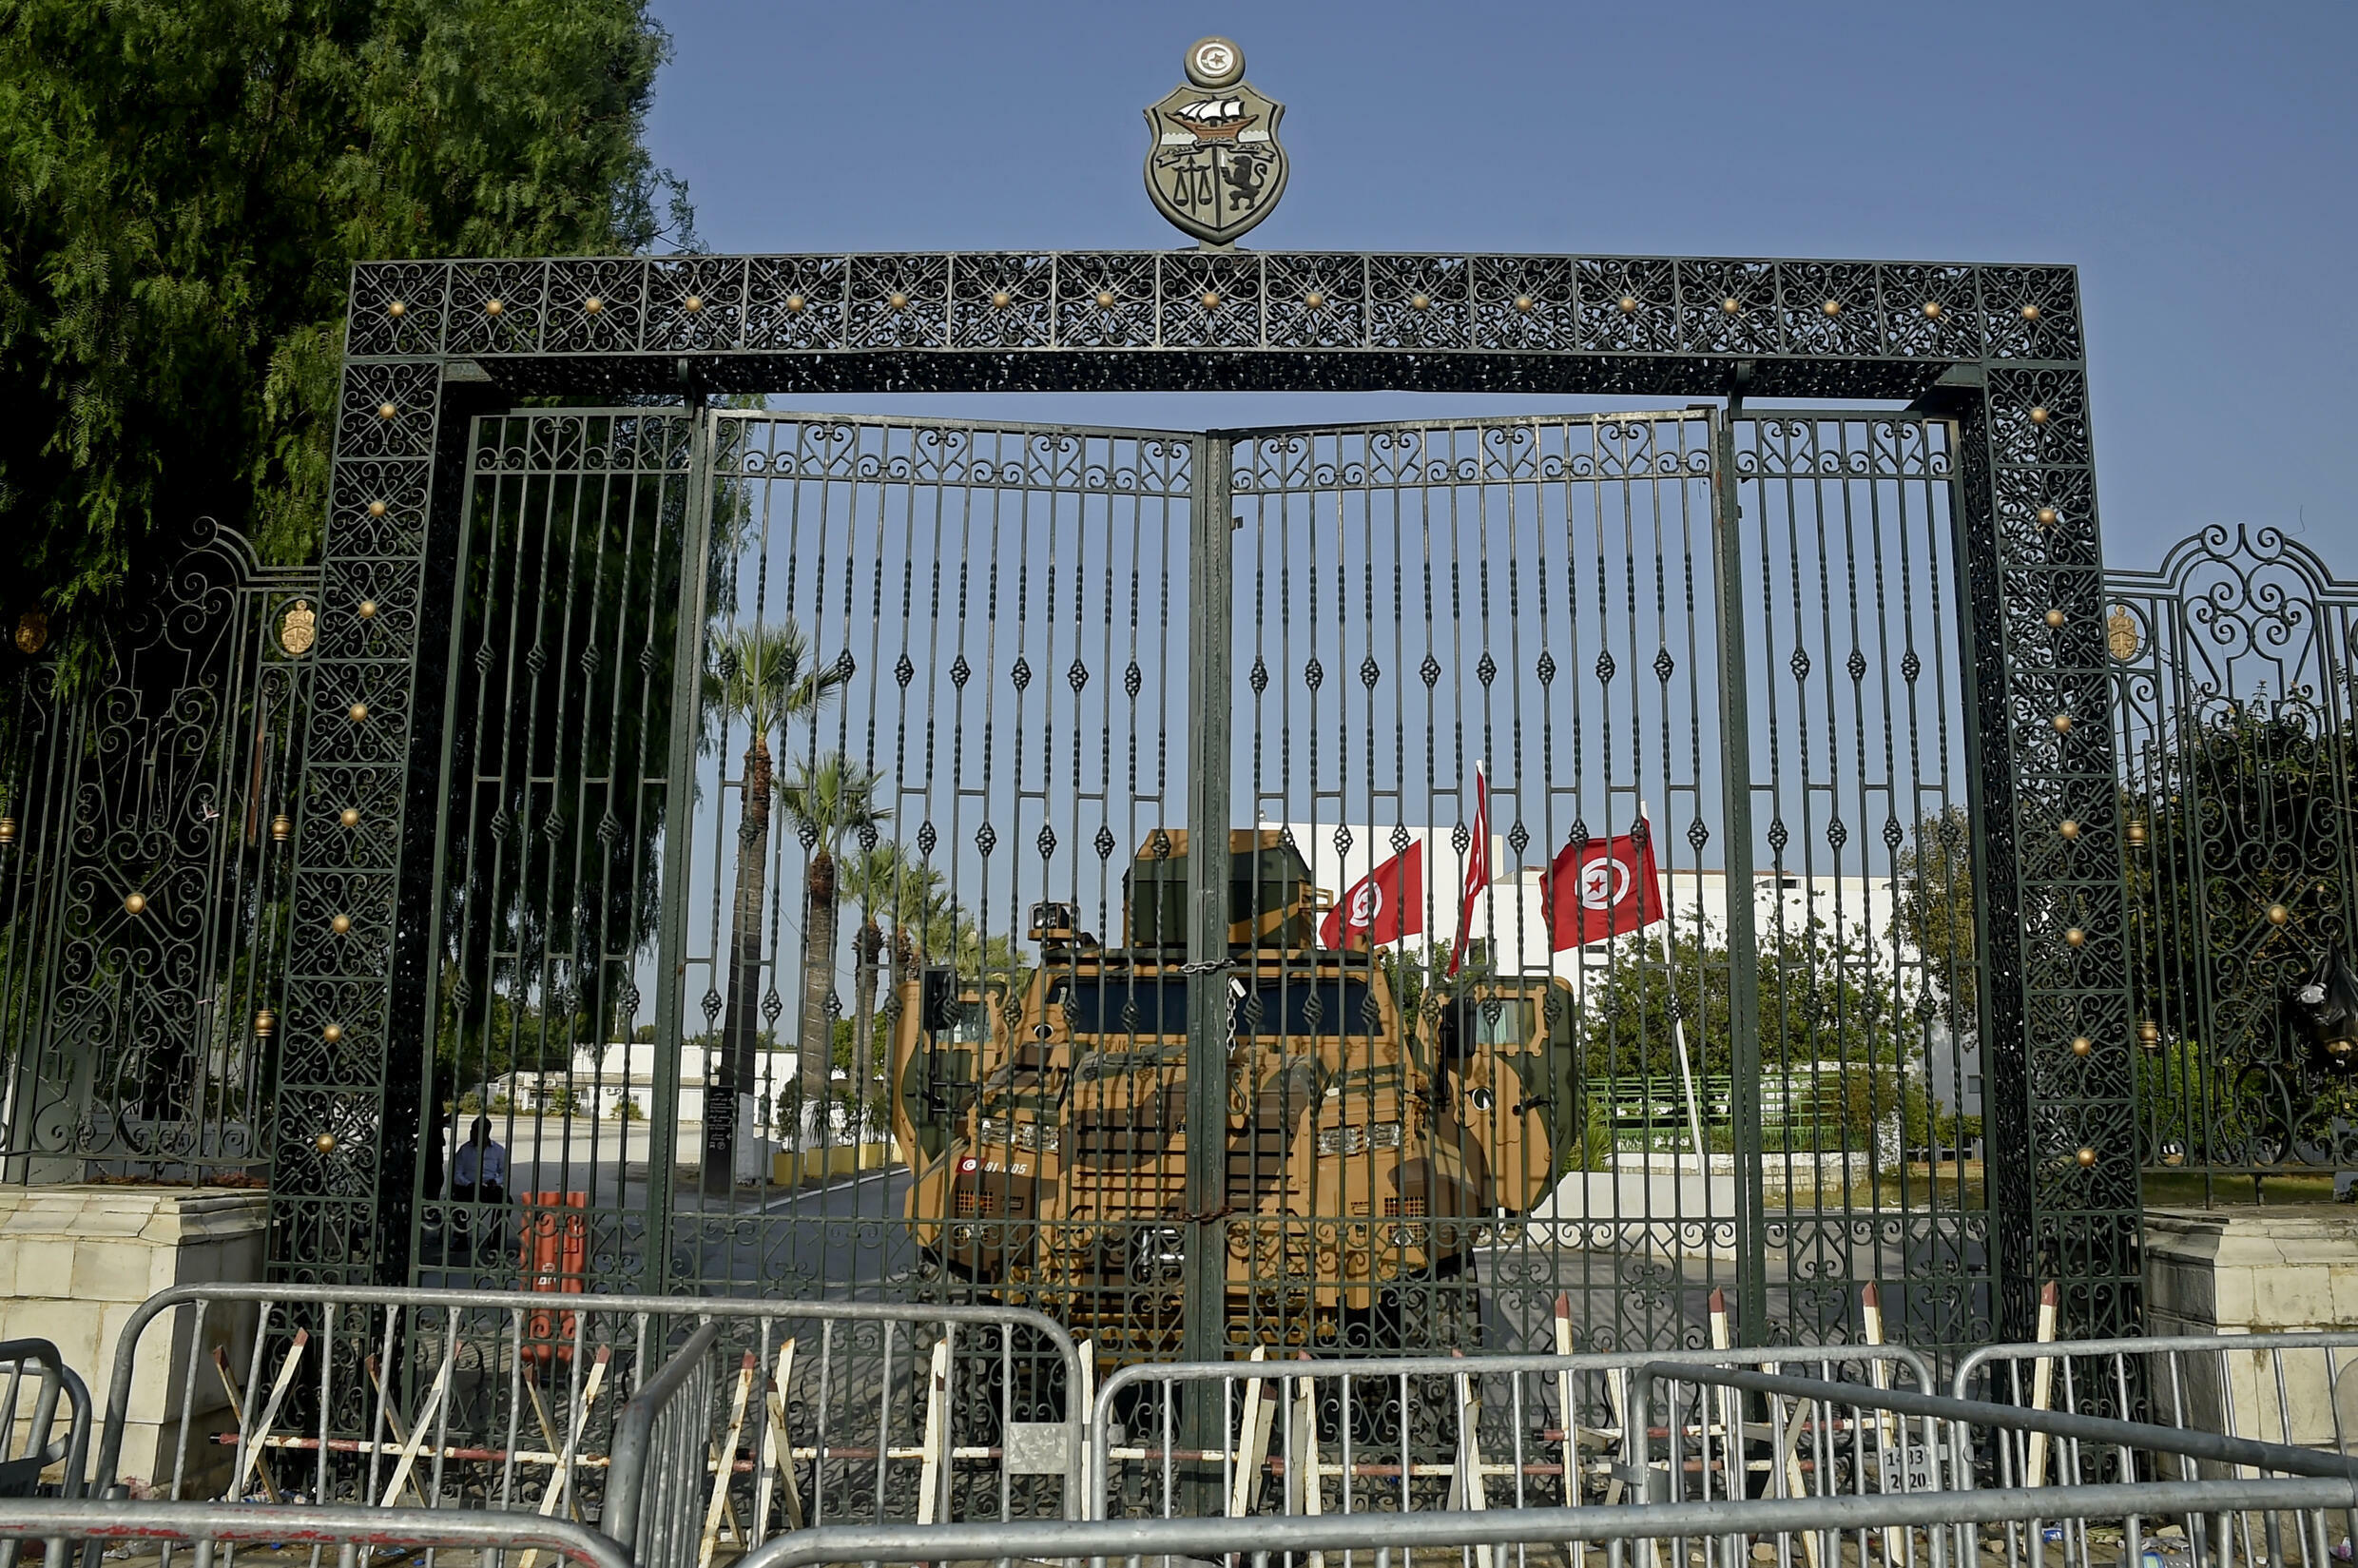 Tunisia's army barricaded the parliament building in the capital Tunis on July 26